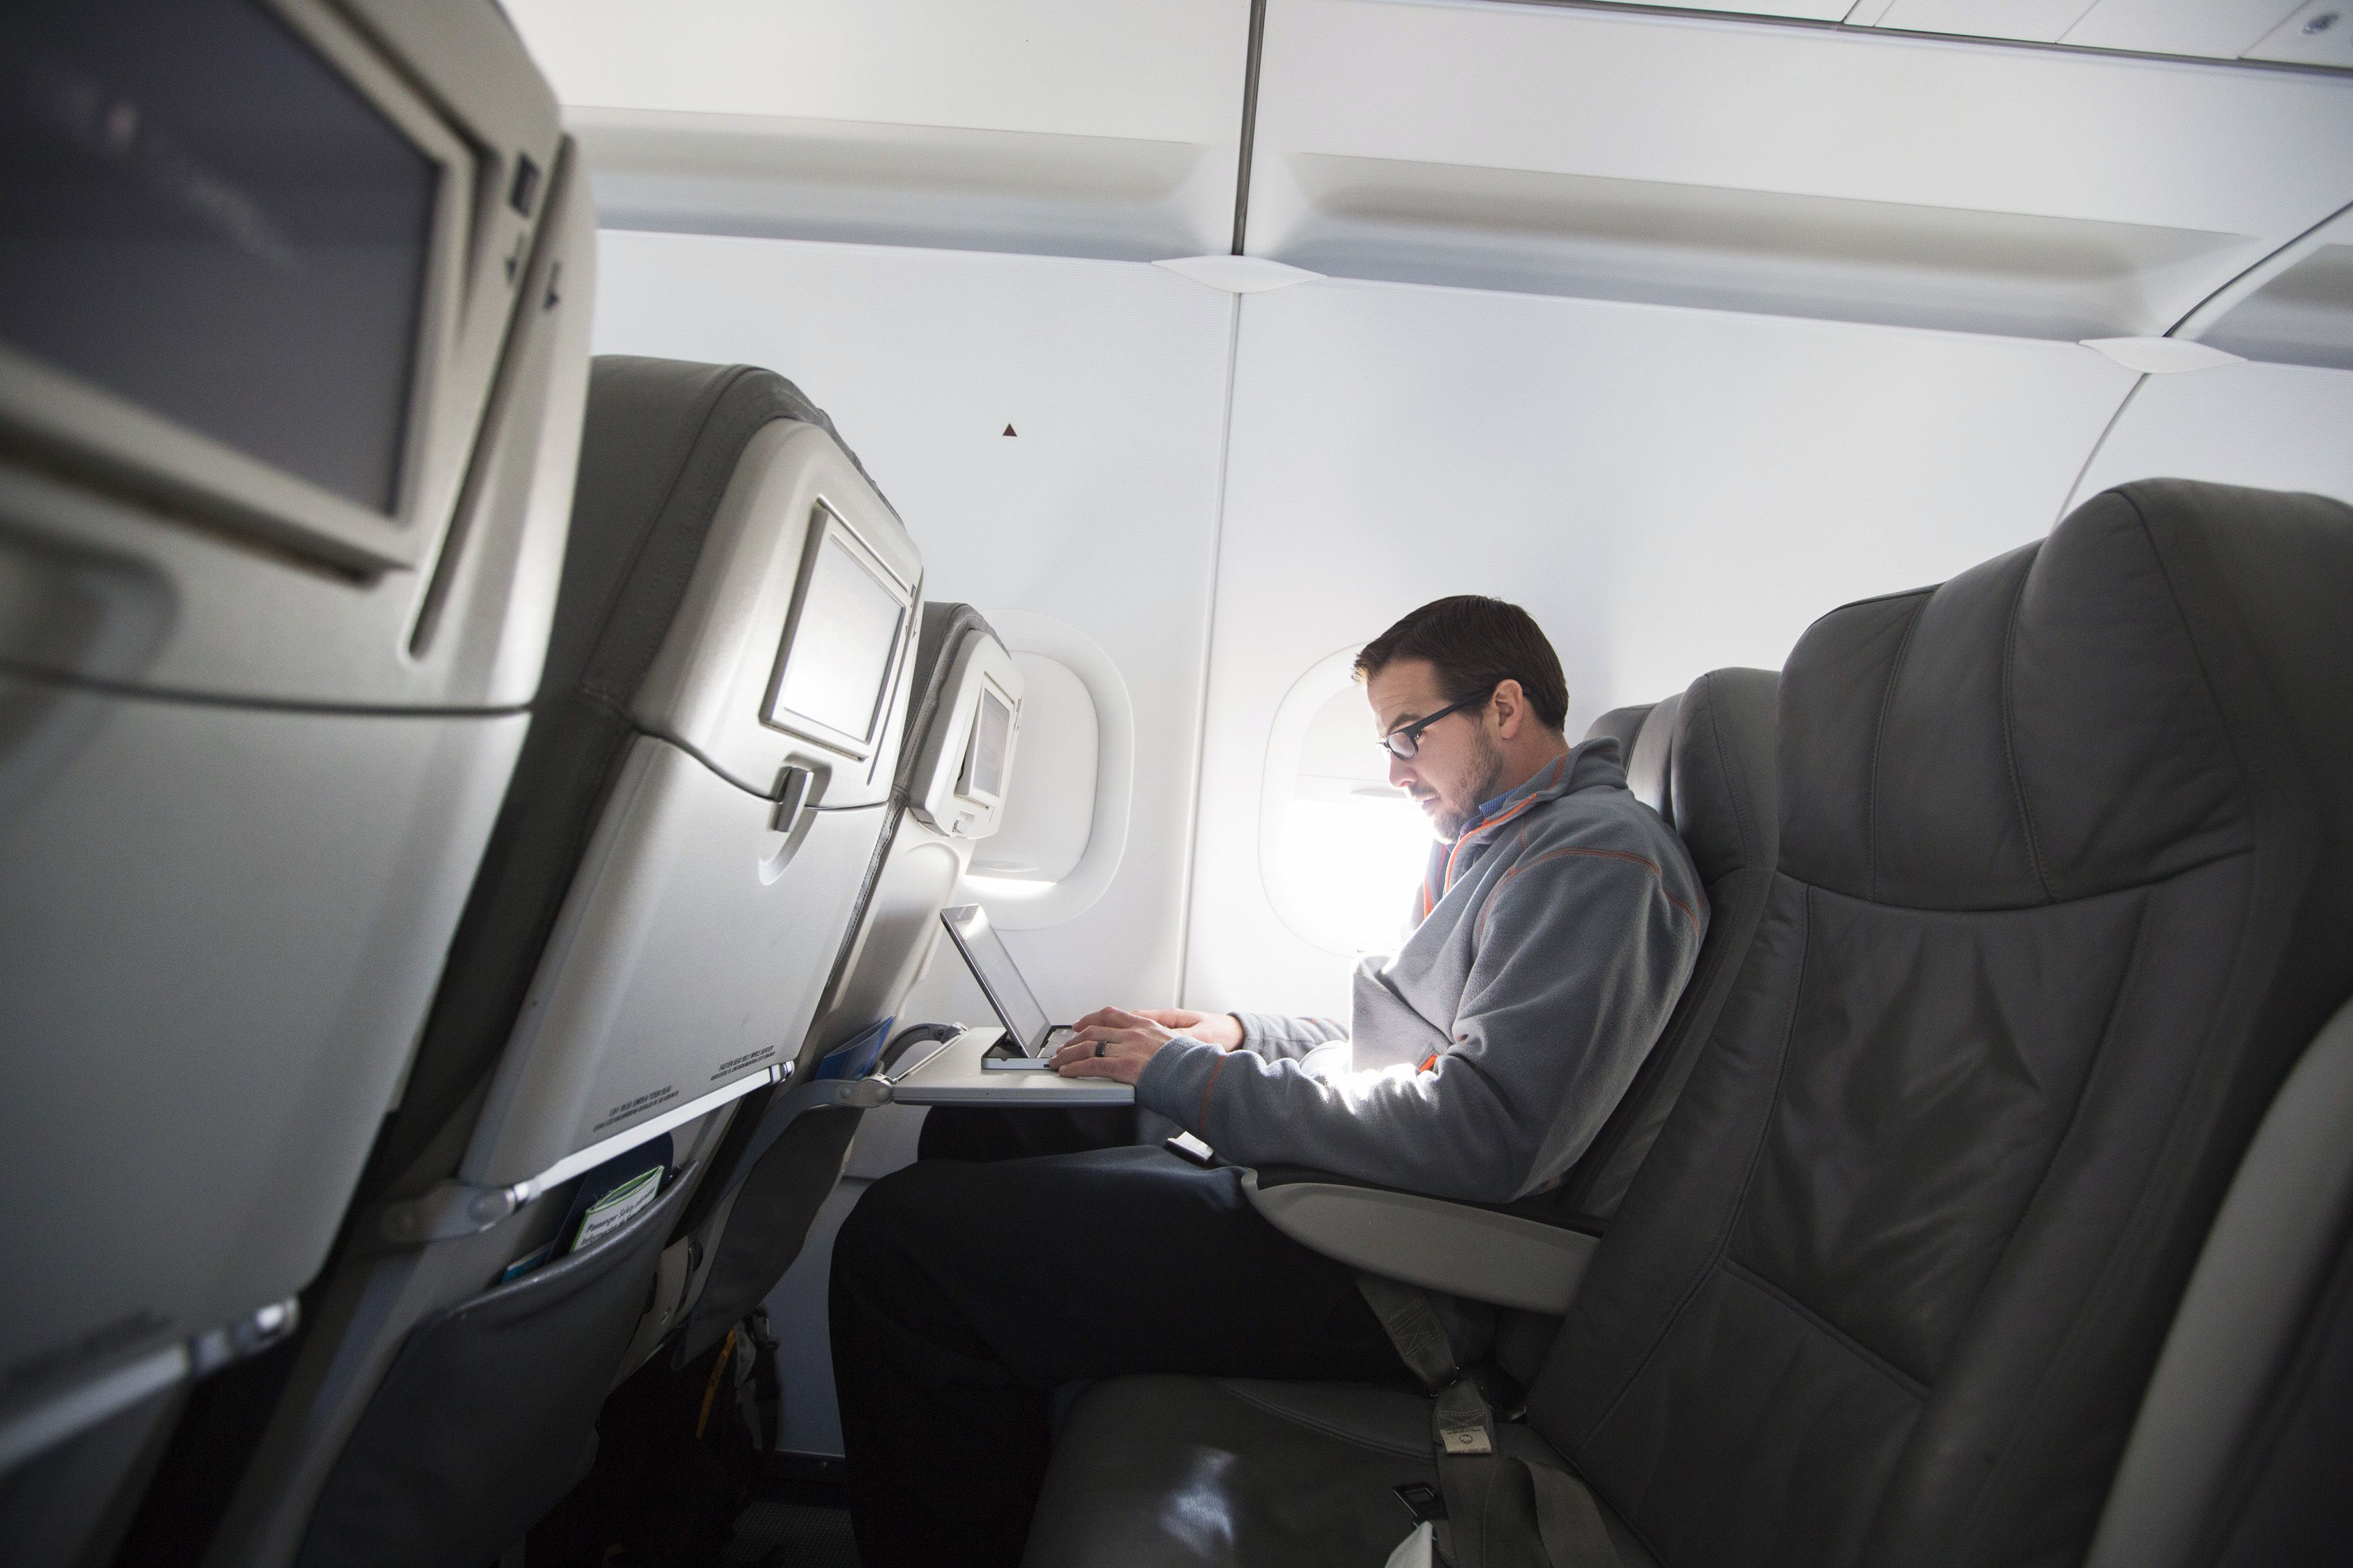 A man uses his laptop to test a new high speed inflight Internet service named Fli-Fi while on a special JetBlue media flight out of John F. Kennedy International Airport in New York December 11, 2013. Wi-Fi in the sky is taking off, promising much better connections for travelers and a bonanza for the companies that sell the systems. With satellite-based Wi-Fi, Internet speeds on jetliners are getting lightning fast. And airlines are finding that travelers expect connections in the air to rival those on the ground - and at lower cost. Picture taken December 11, 2013. To match Analysis AIRLINES-WIFI/       REUTERS/Lucas Jackson (UNITED STATES - Tags: TRANSPORT BUSINESS SCIENCE TECHNOLOGY TELECOMS TRAVEL) - RTR3L533